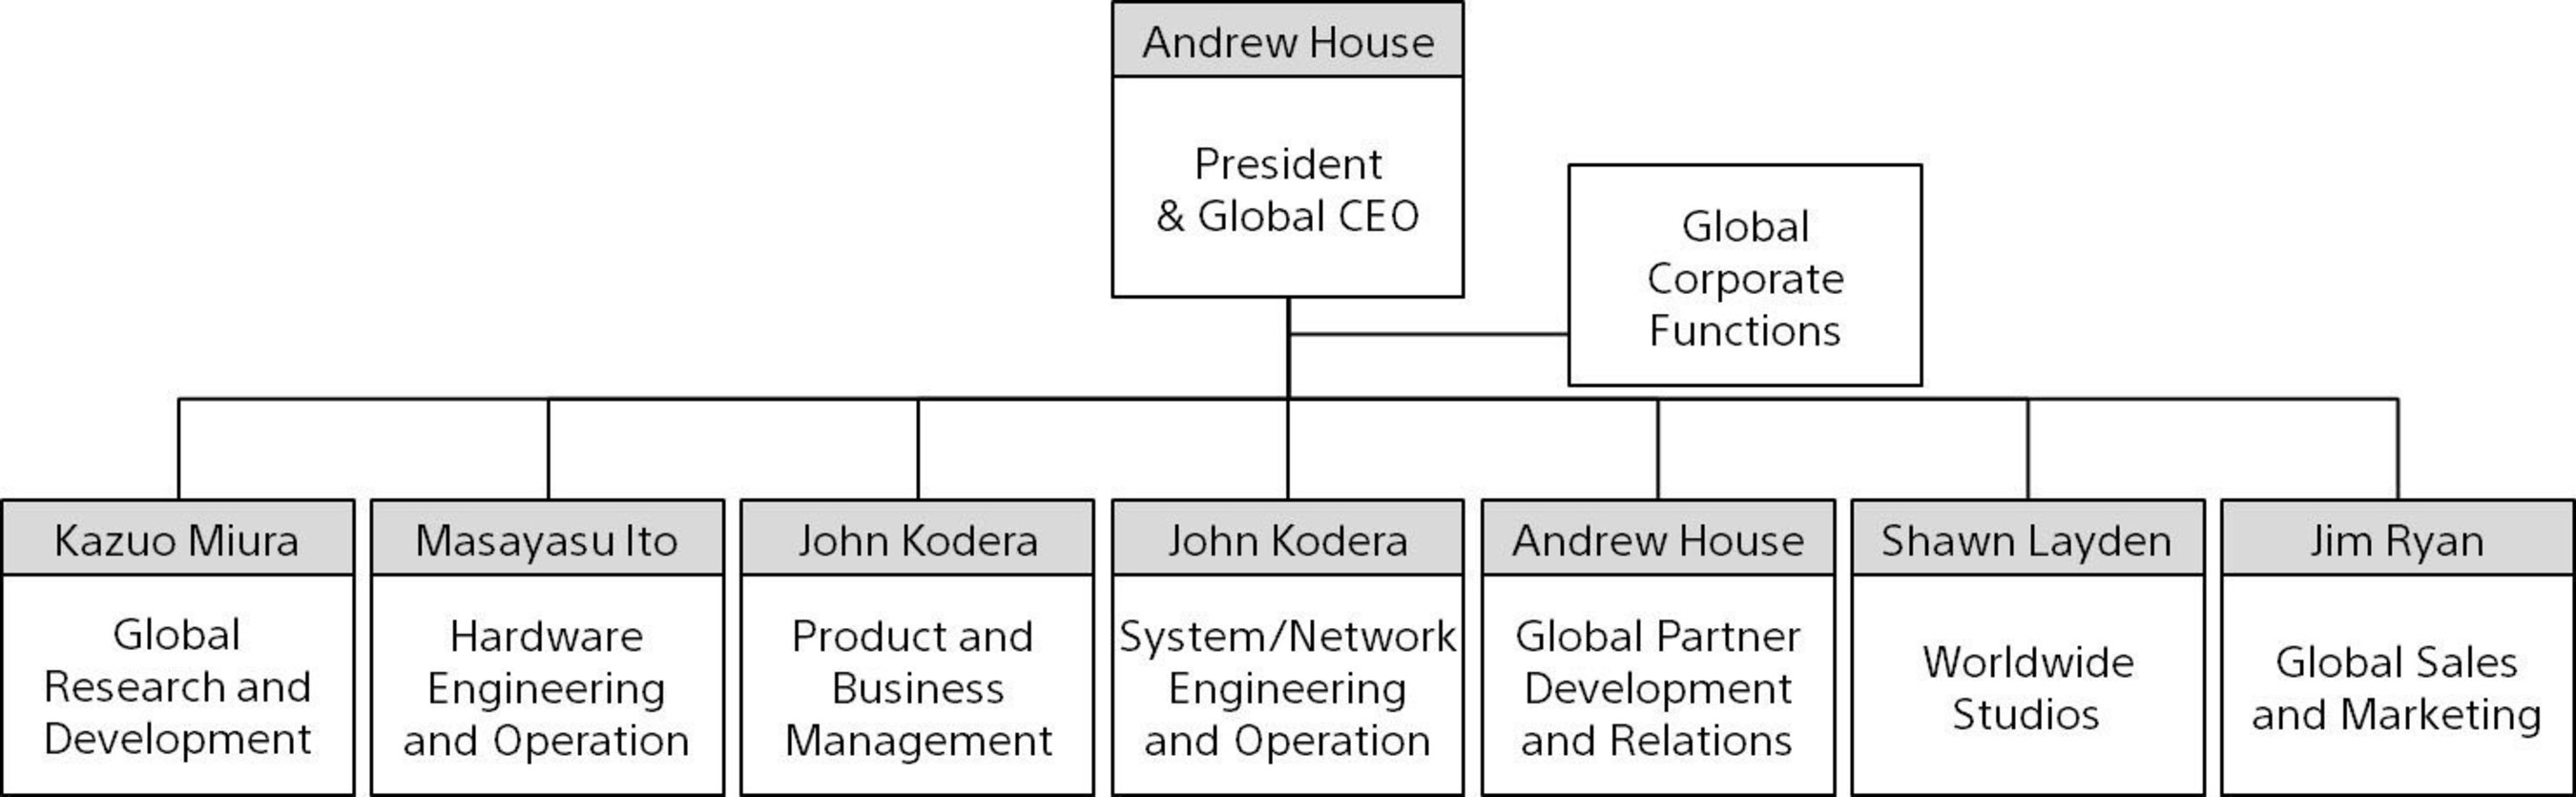 Overview of Global Functions